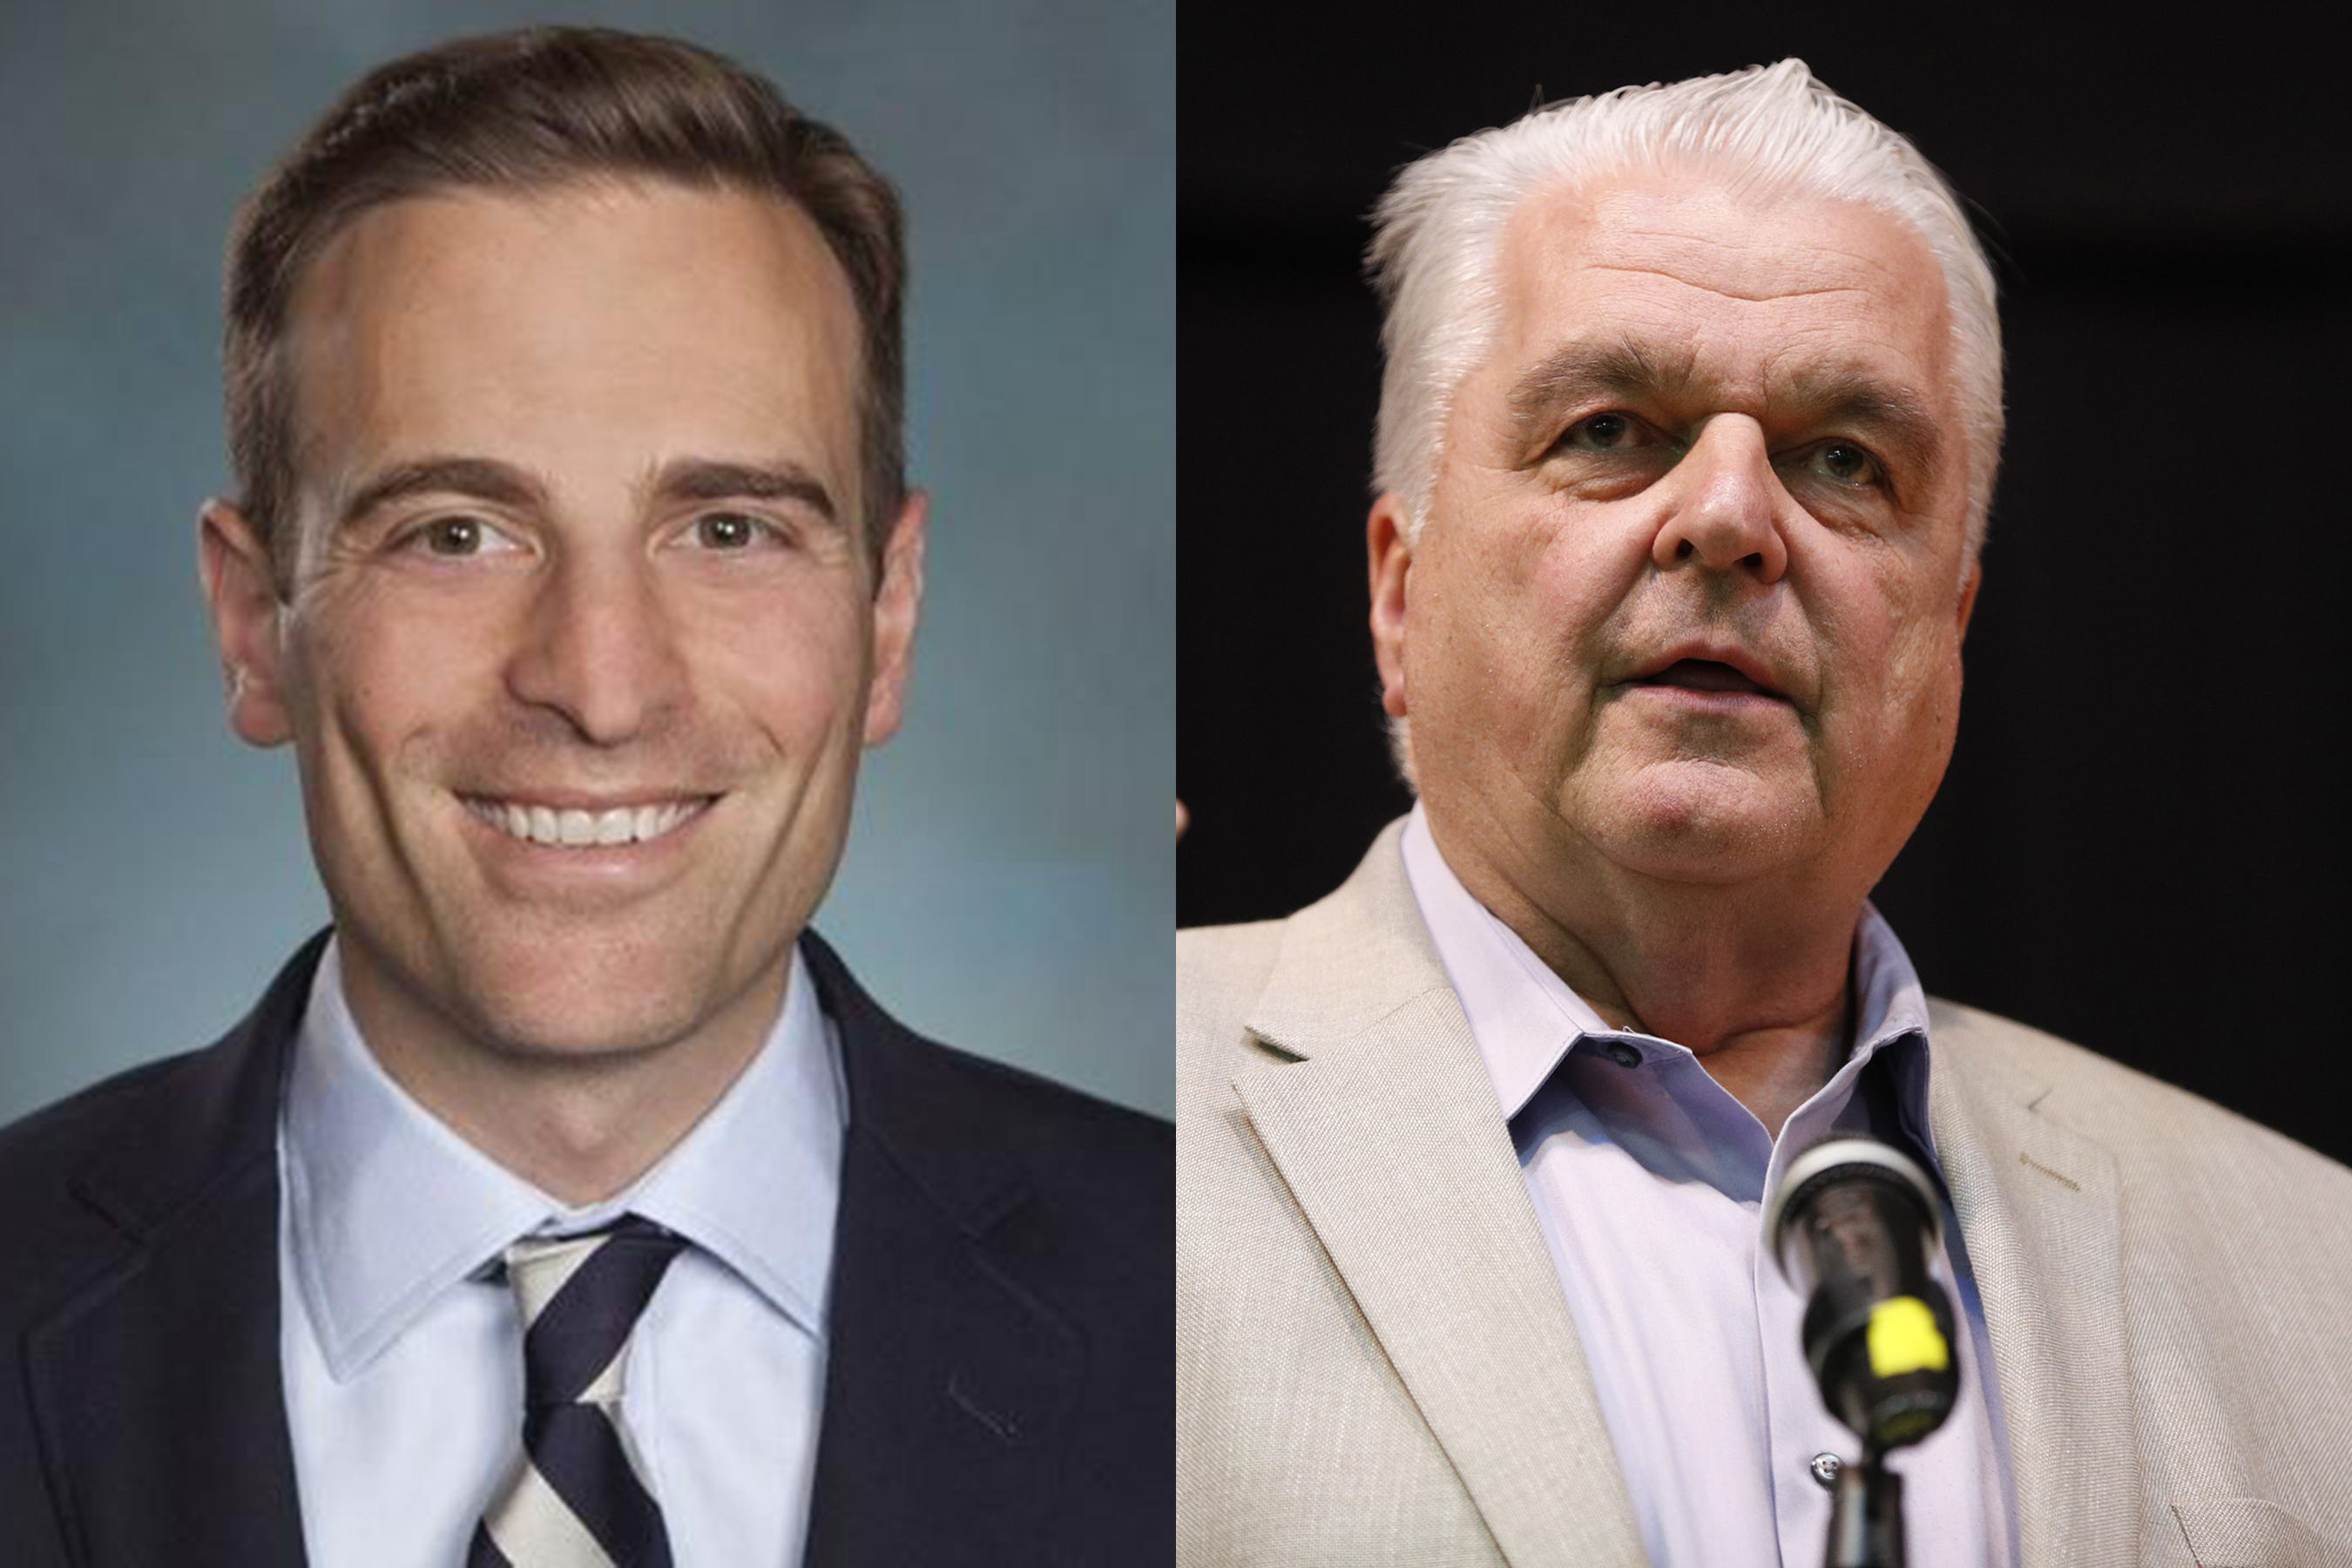 Laxalt agrees to live, televised debate with Sisolak ahead of governor's office showdown | Reno Gazette Journal